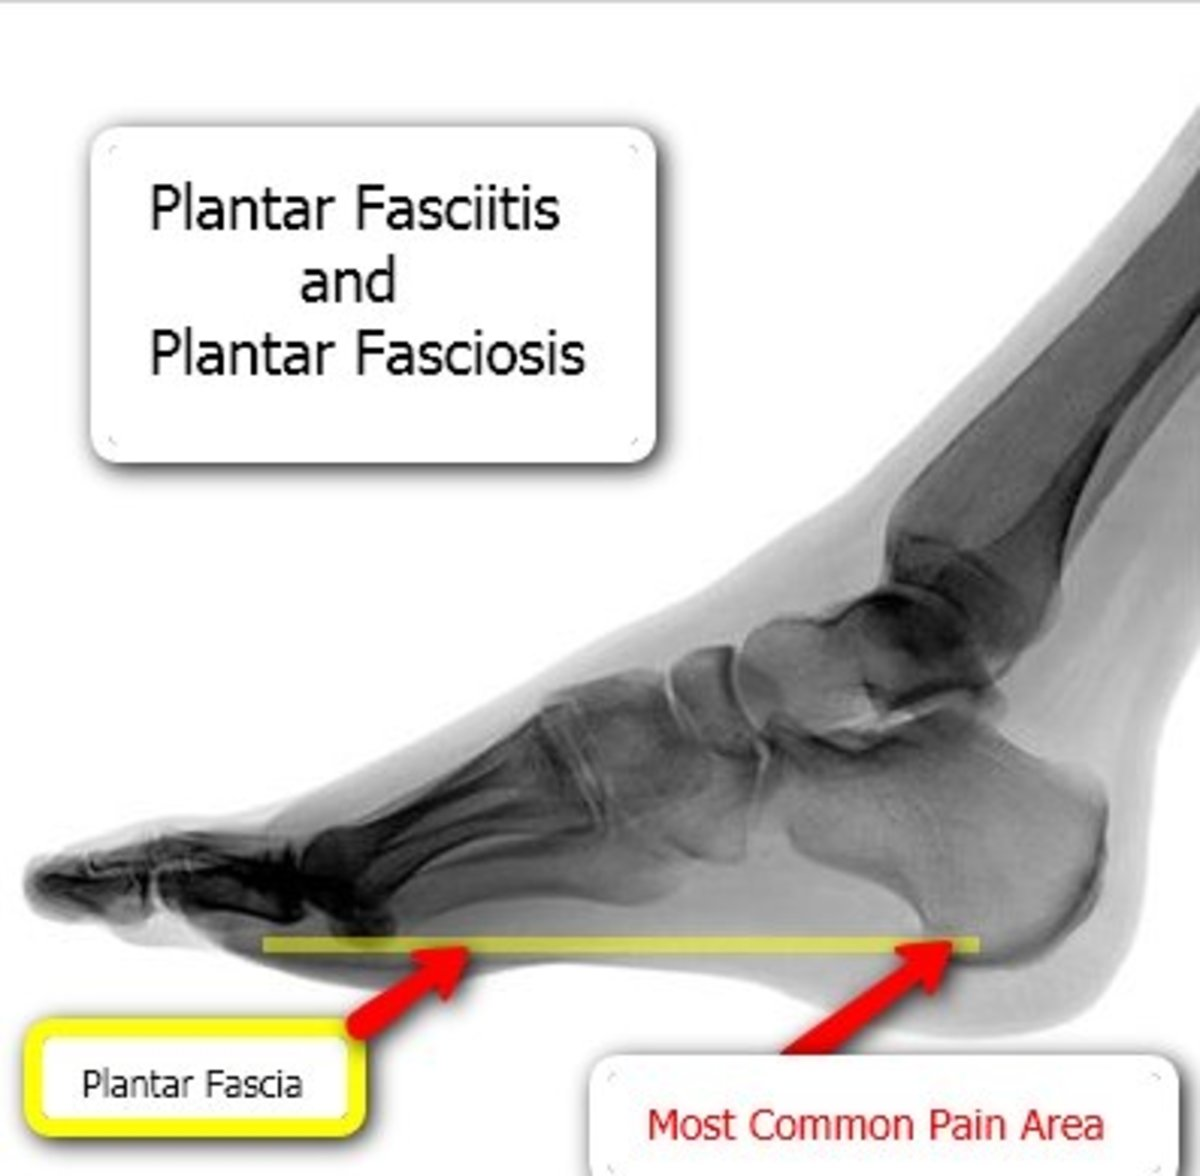 Plantar Fasciitis Information - Plantar Fascia Heel Pain © Counterpoise(image used with permission)